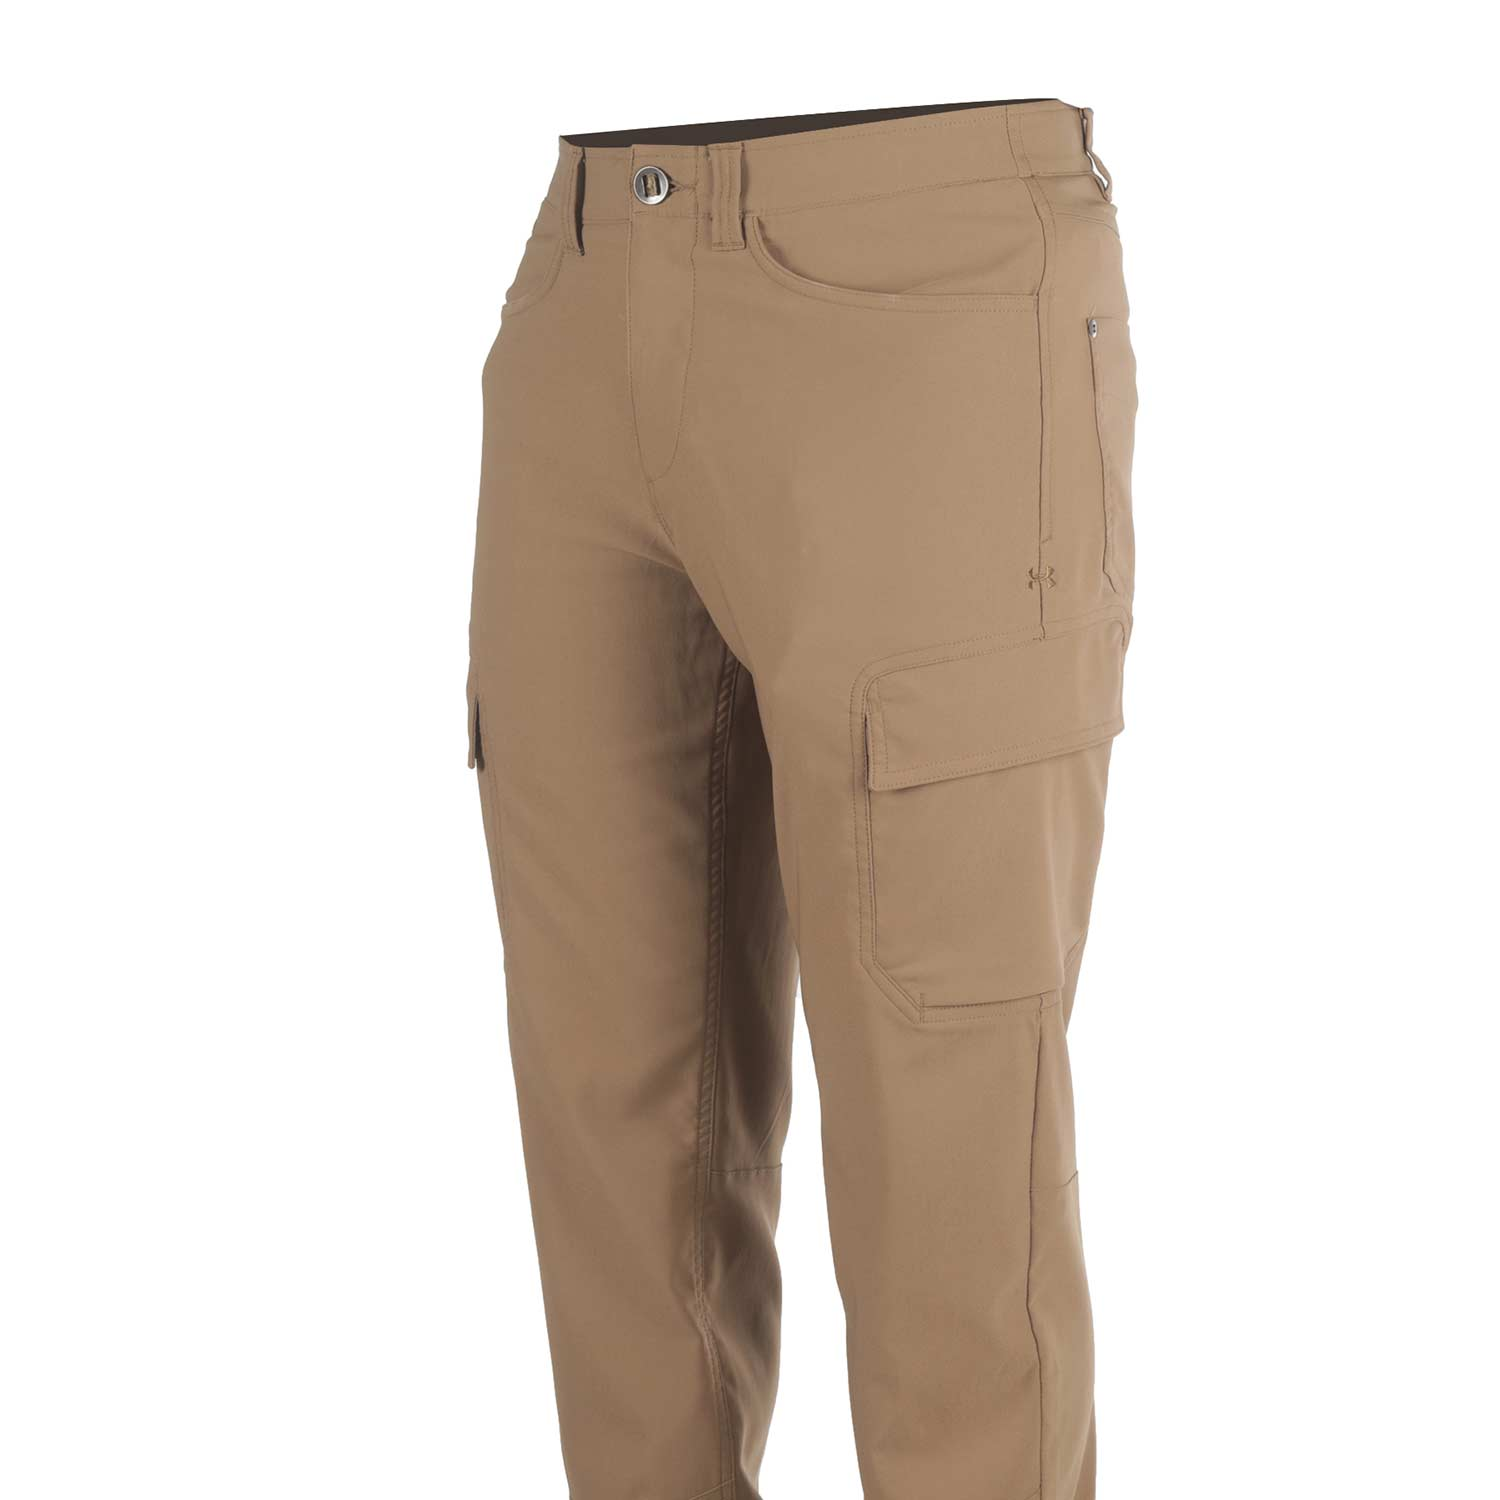 Under Armour Storm Covert Tactical Pants